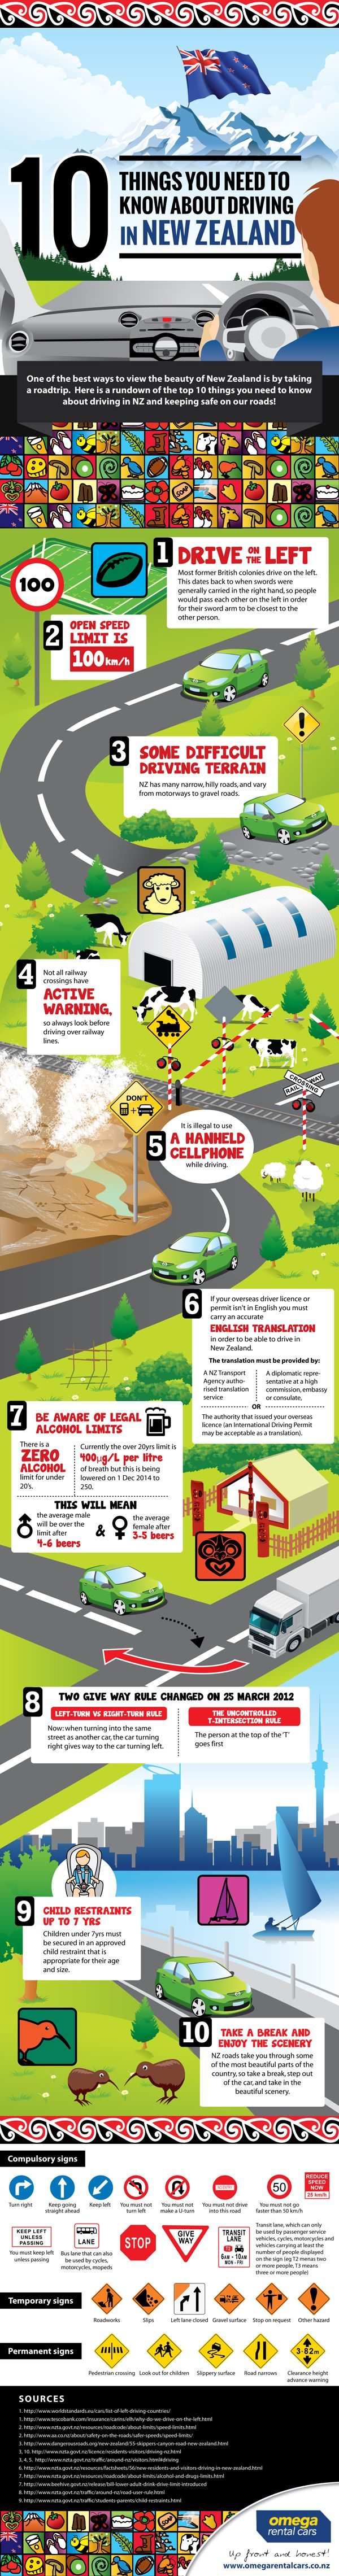 Safe Driving in New Zealand